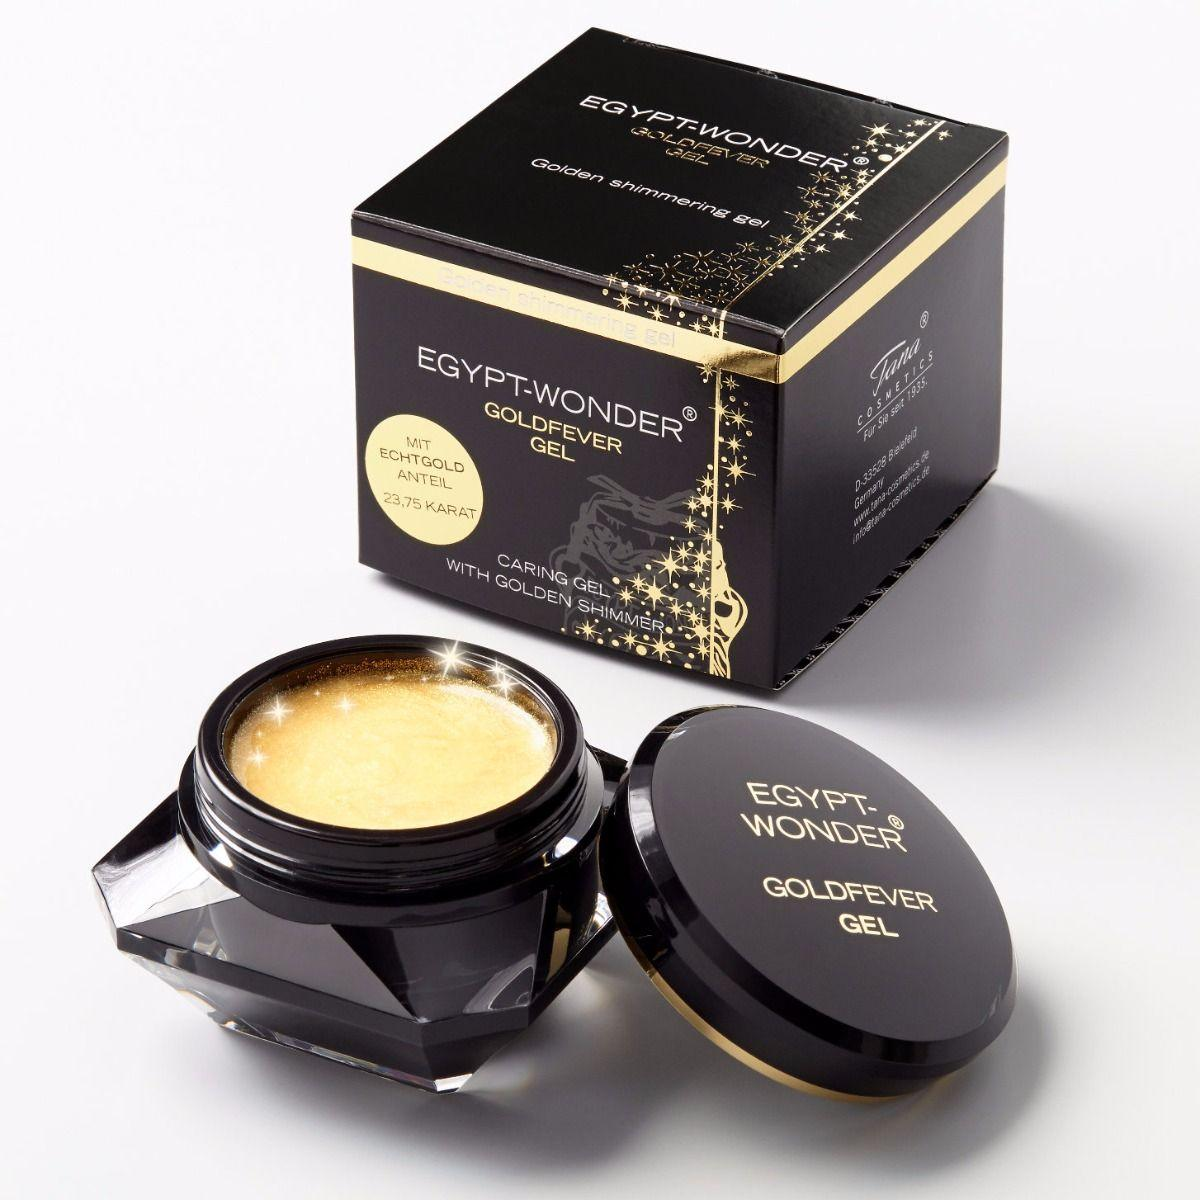 Egypt-Wonder gél GOLDFEVER GEL-krém 50ml 23.75 k